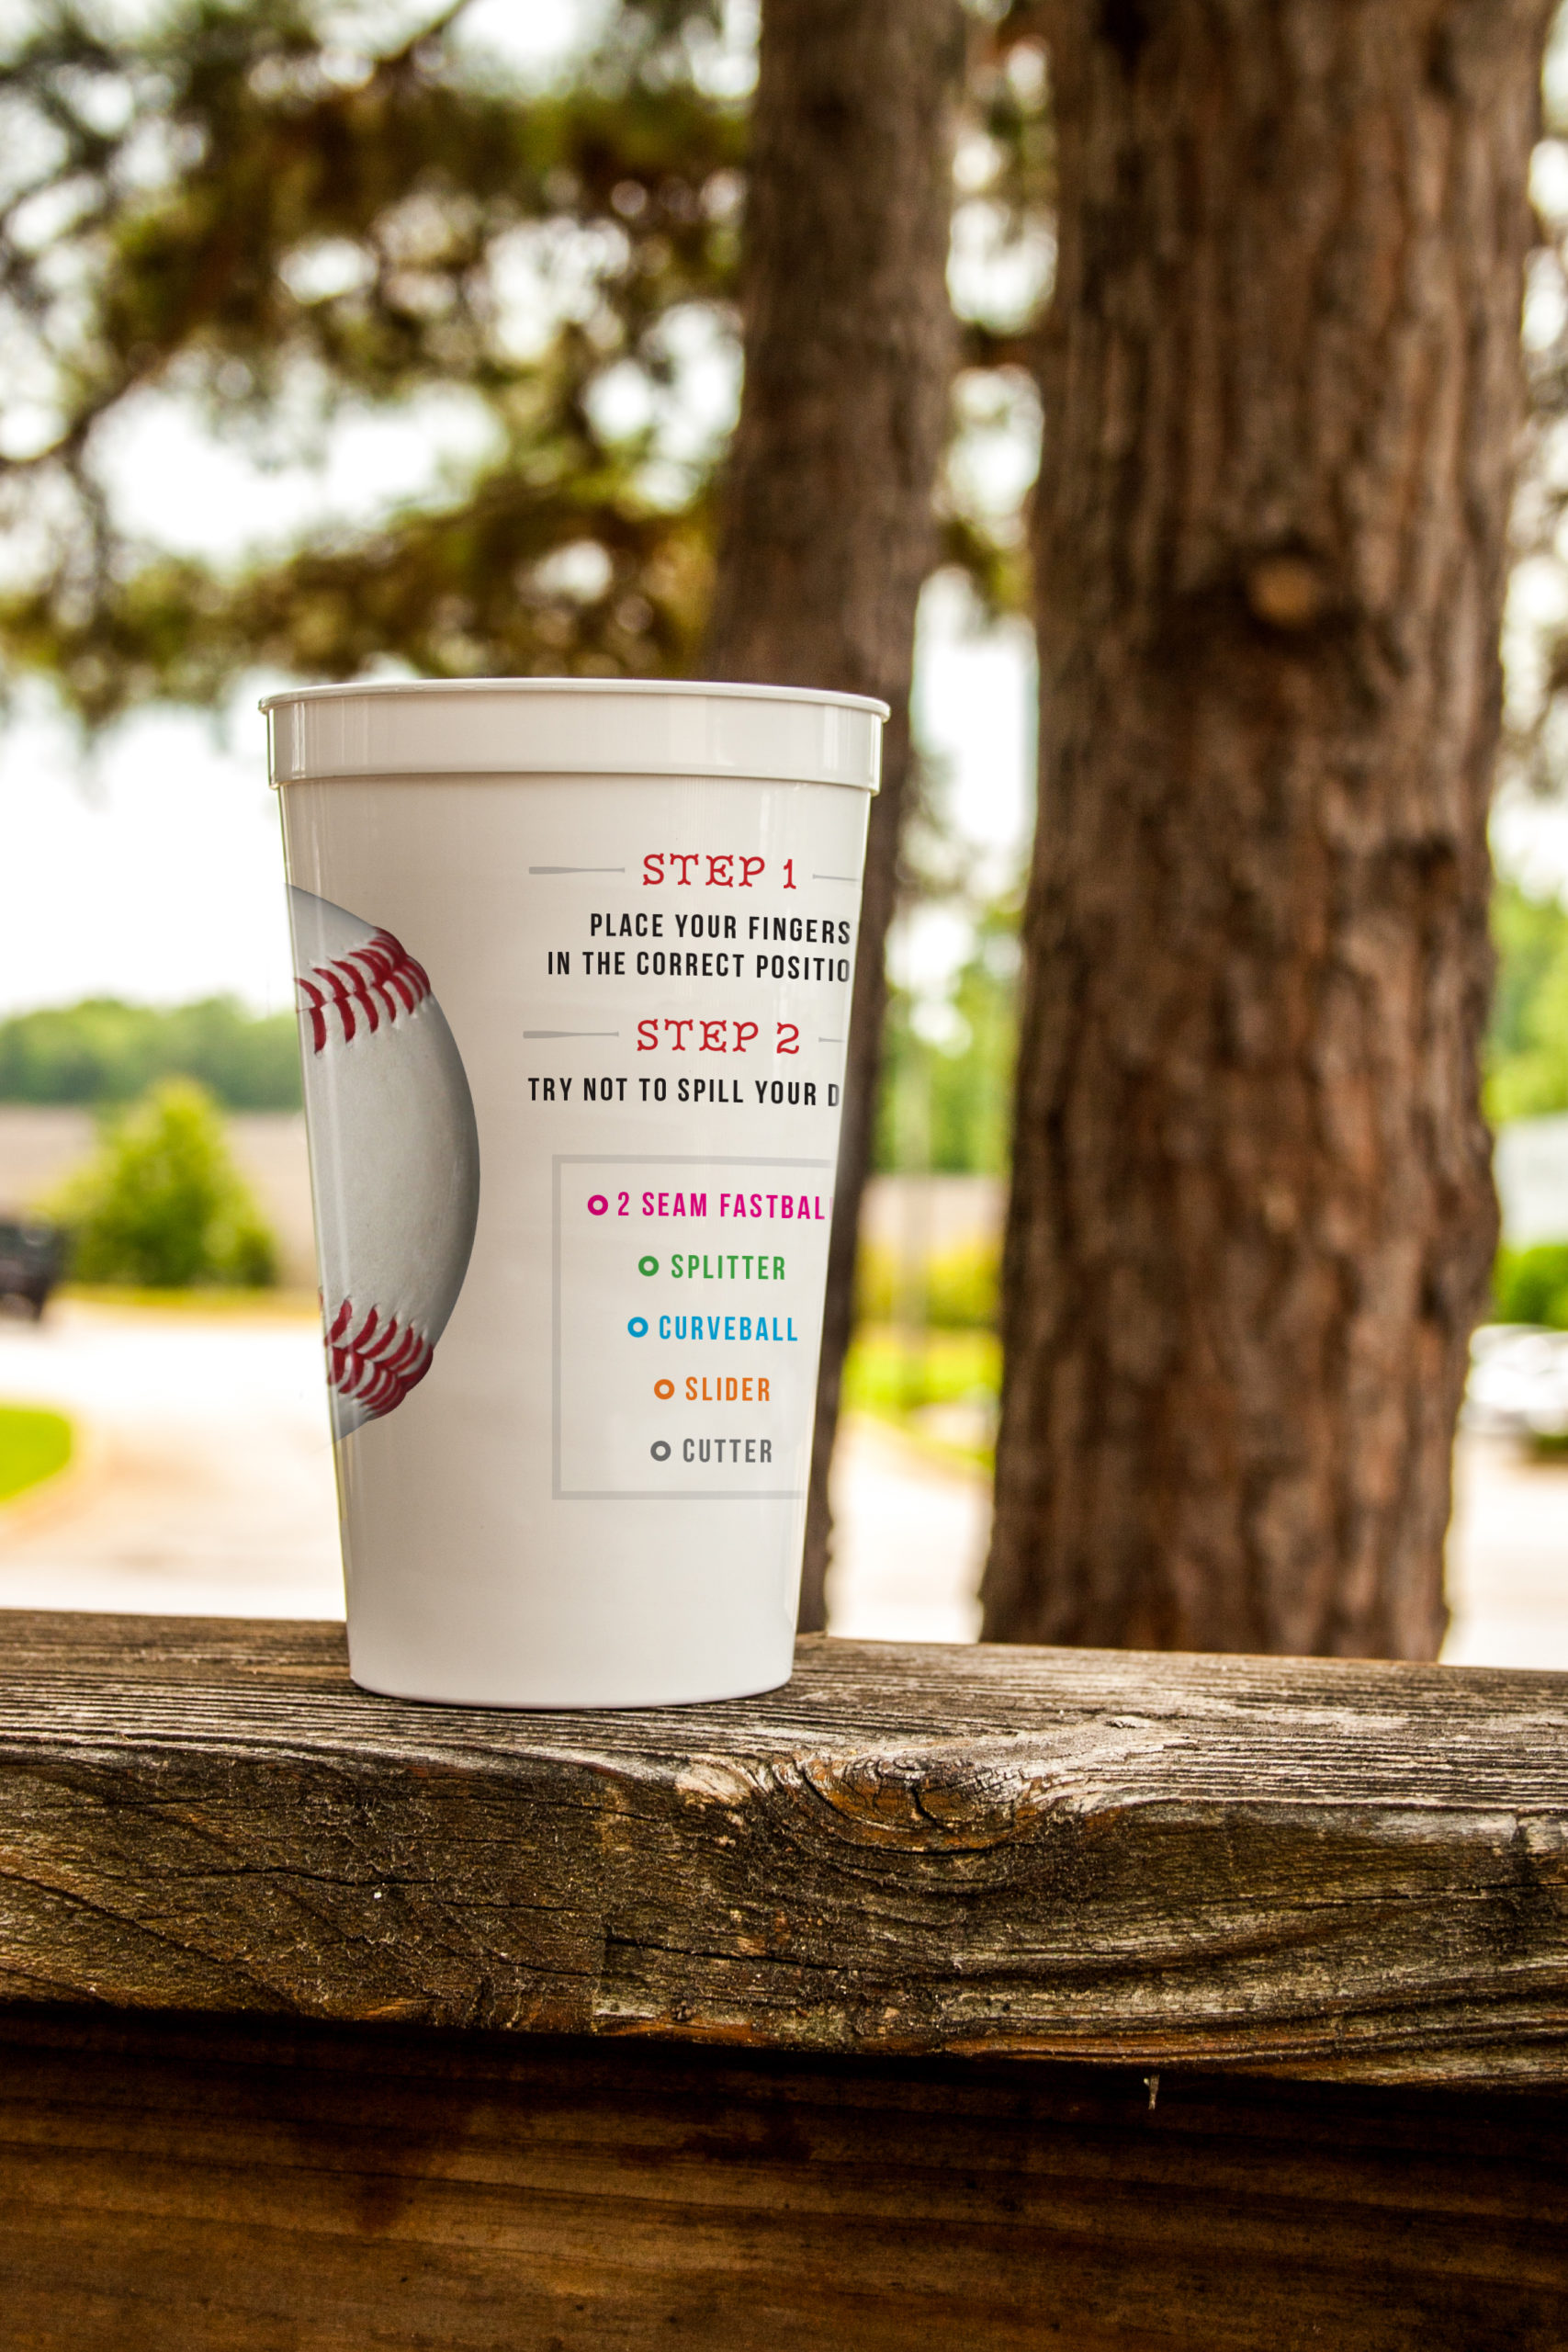 Baseball-cup-souvenir-2-advertising-copywriting-Lochness-marketing